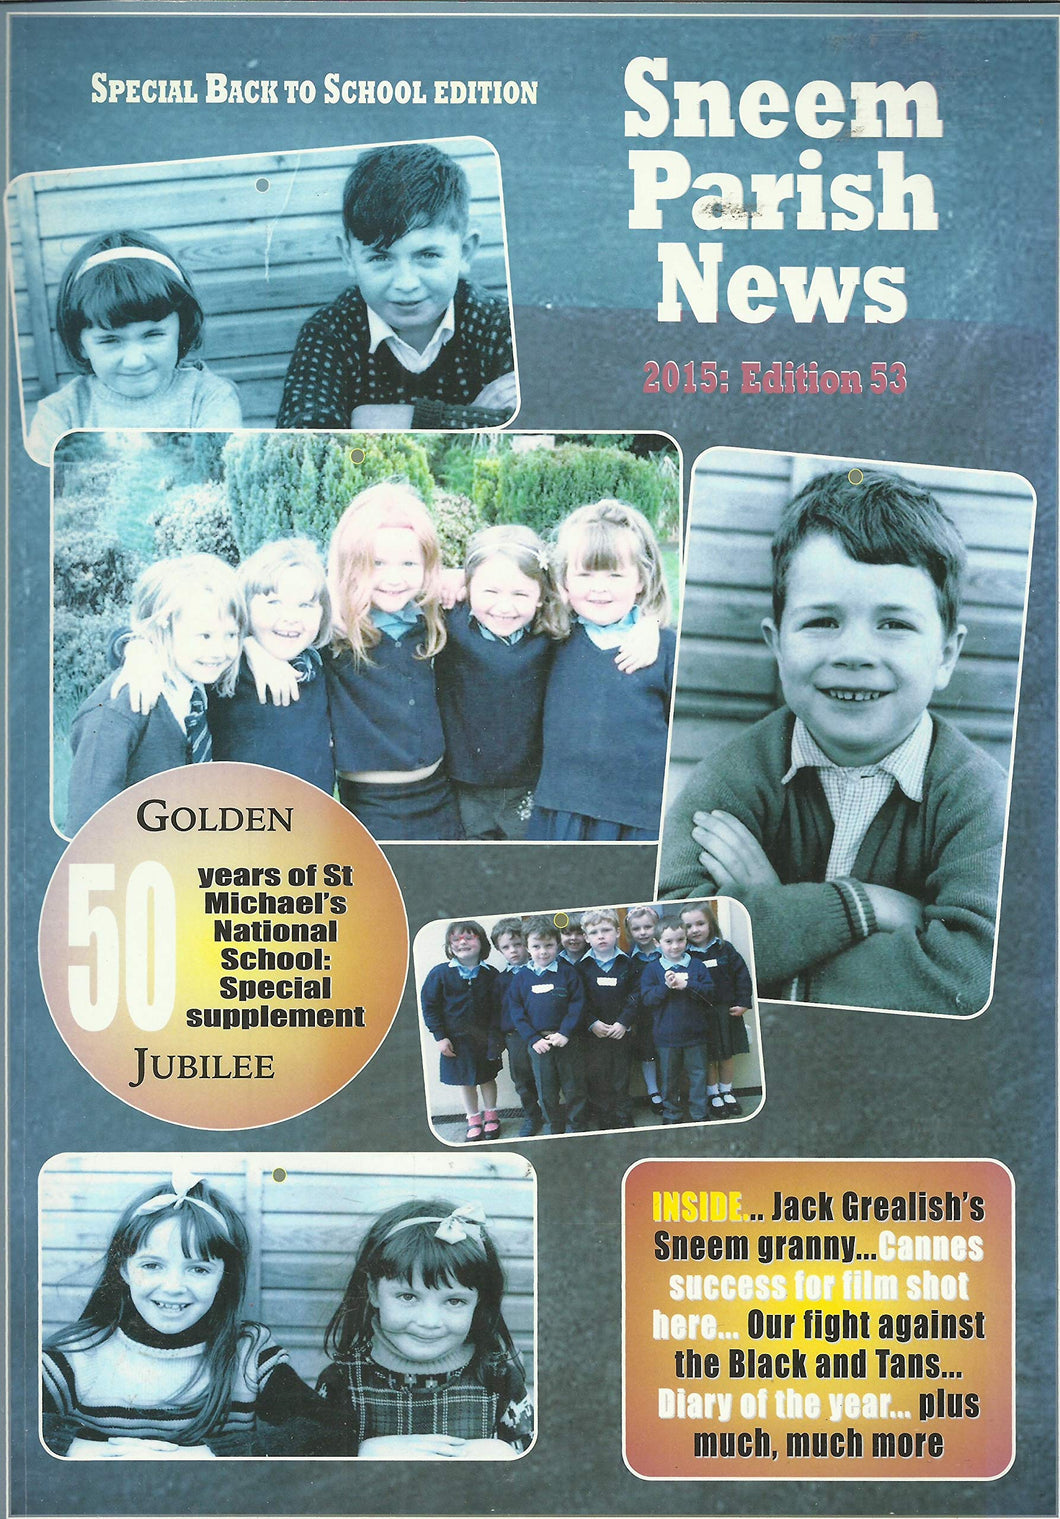 Sneem Parish News 2015: Edition 53 - Special Back to School Edition